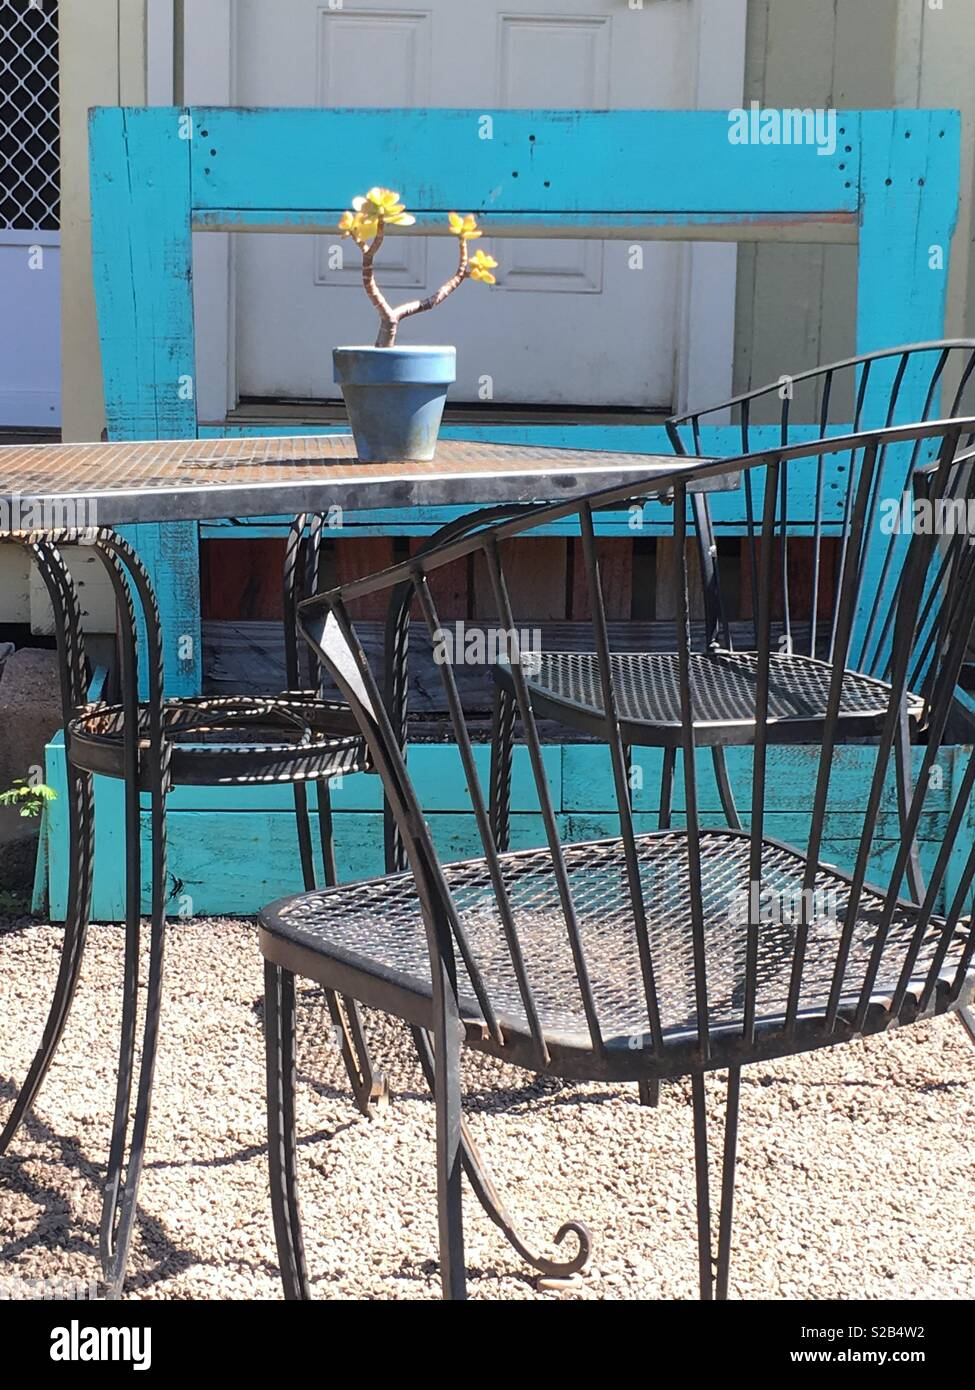 Merveilleux Old Iron Cafe Table And Chairs Outside With Plant On Top ...